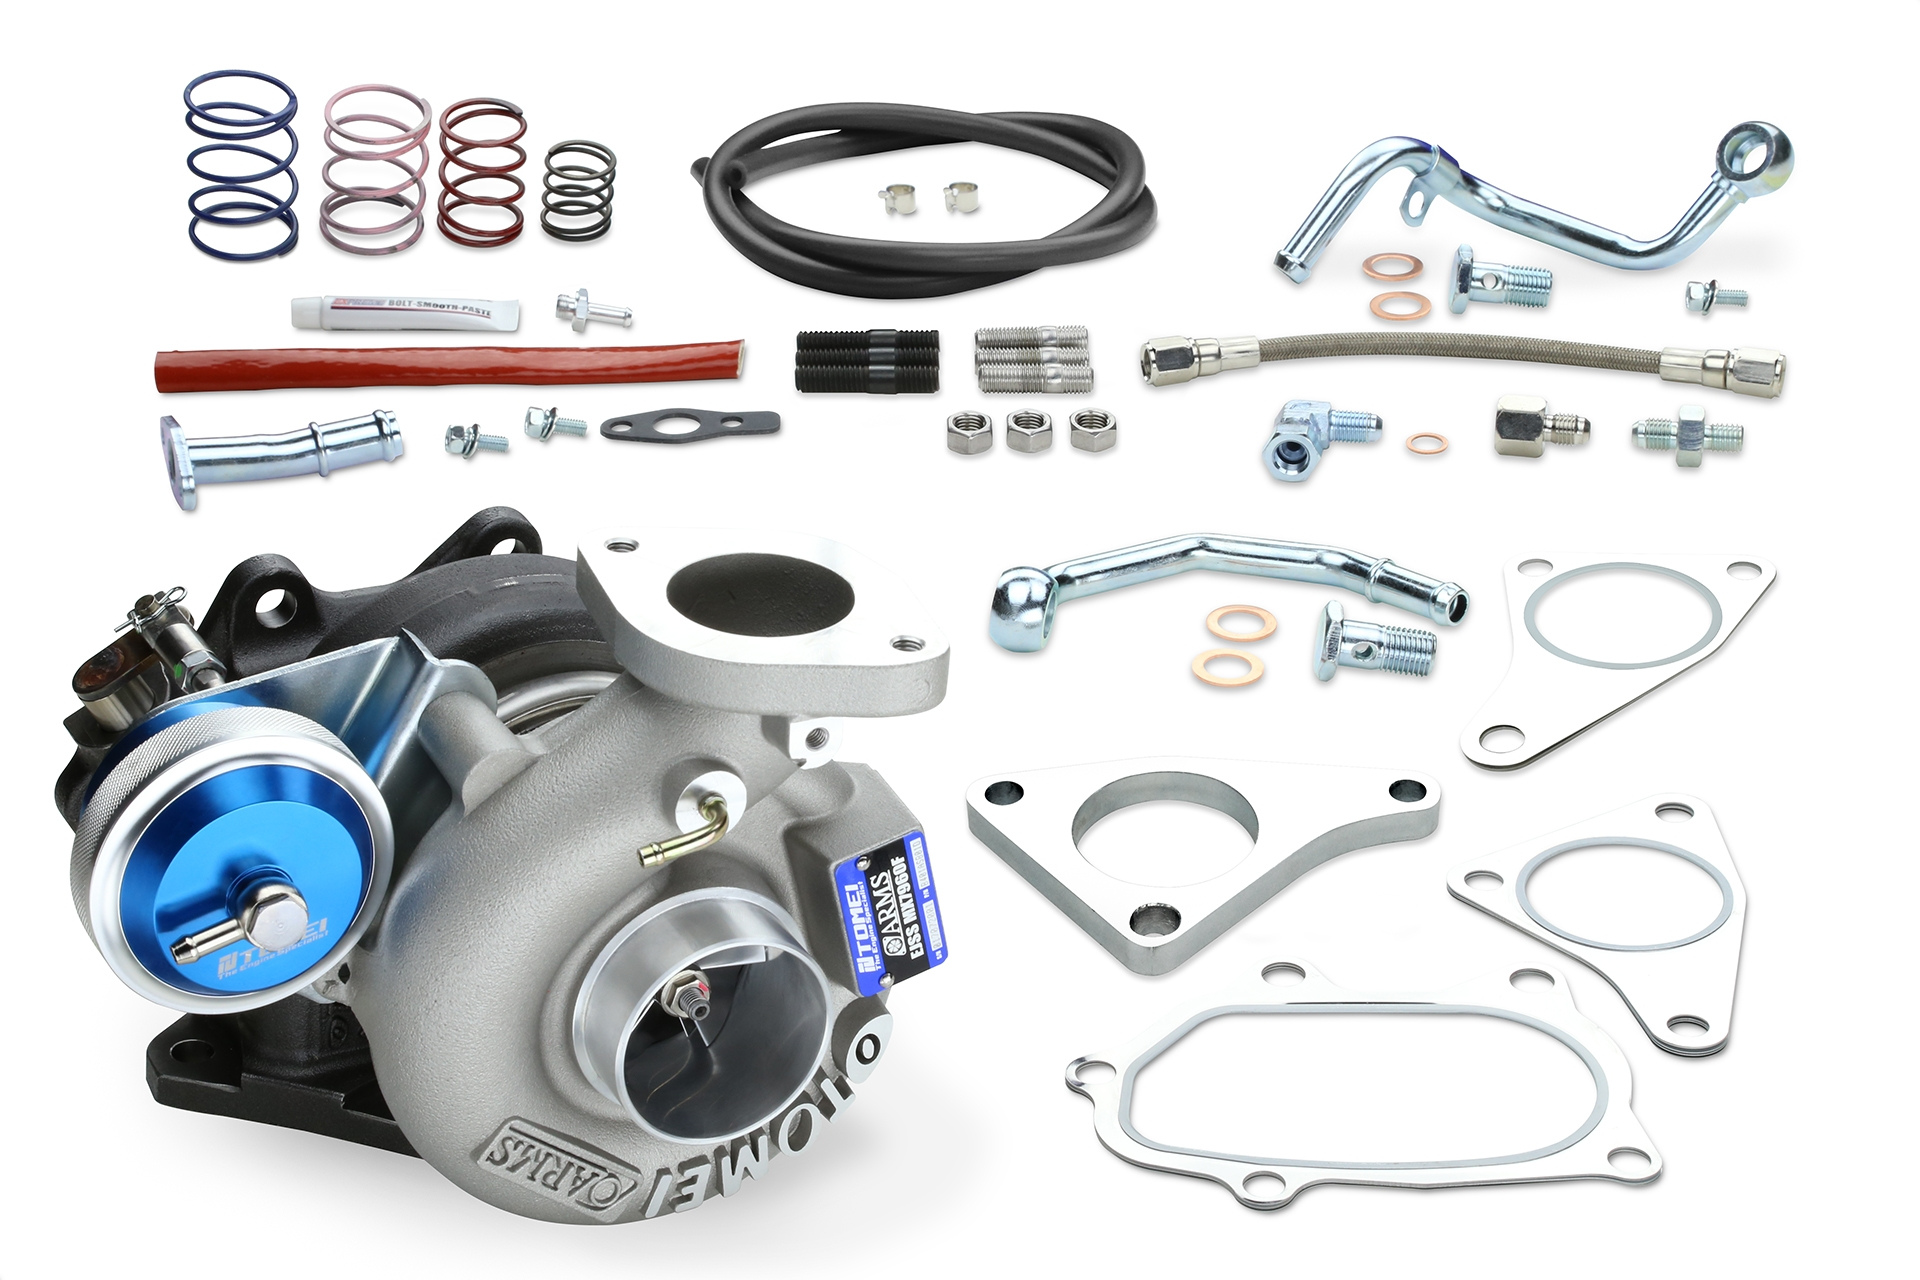 Tomei Turbocharger Kit Arms MX7960F EJ Single Scroll